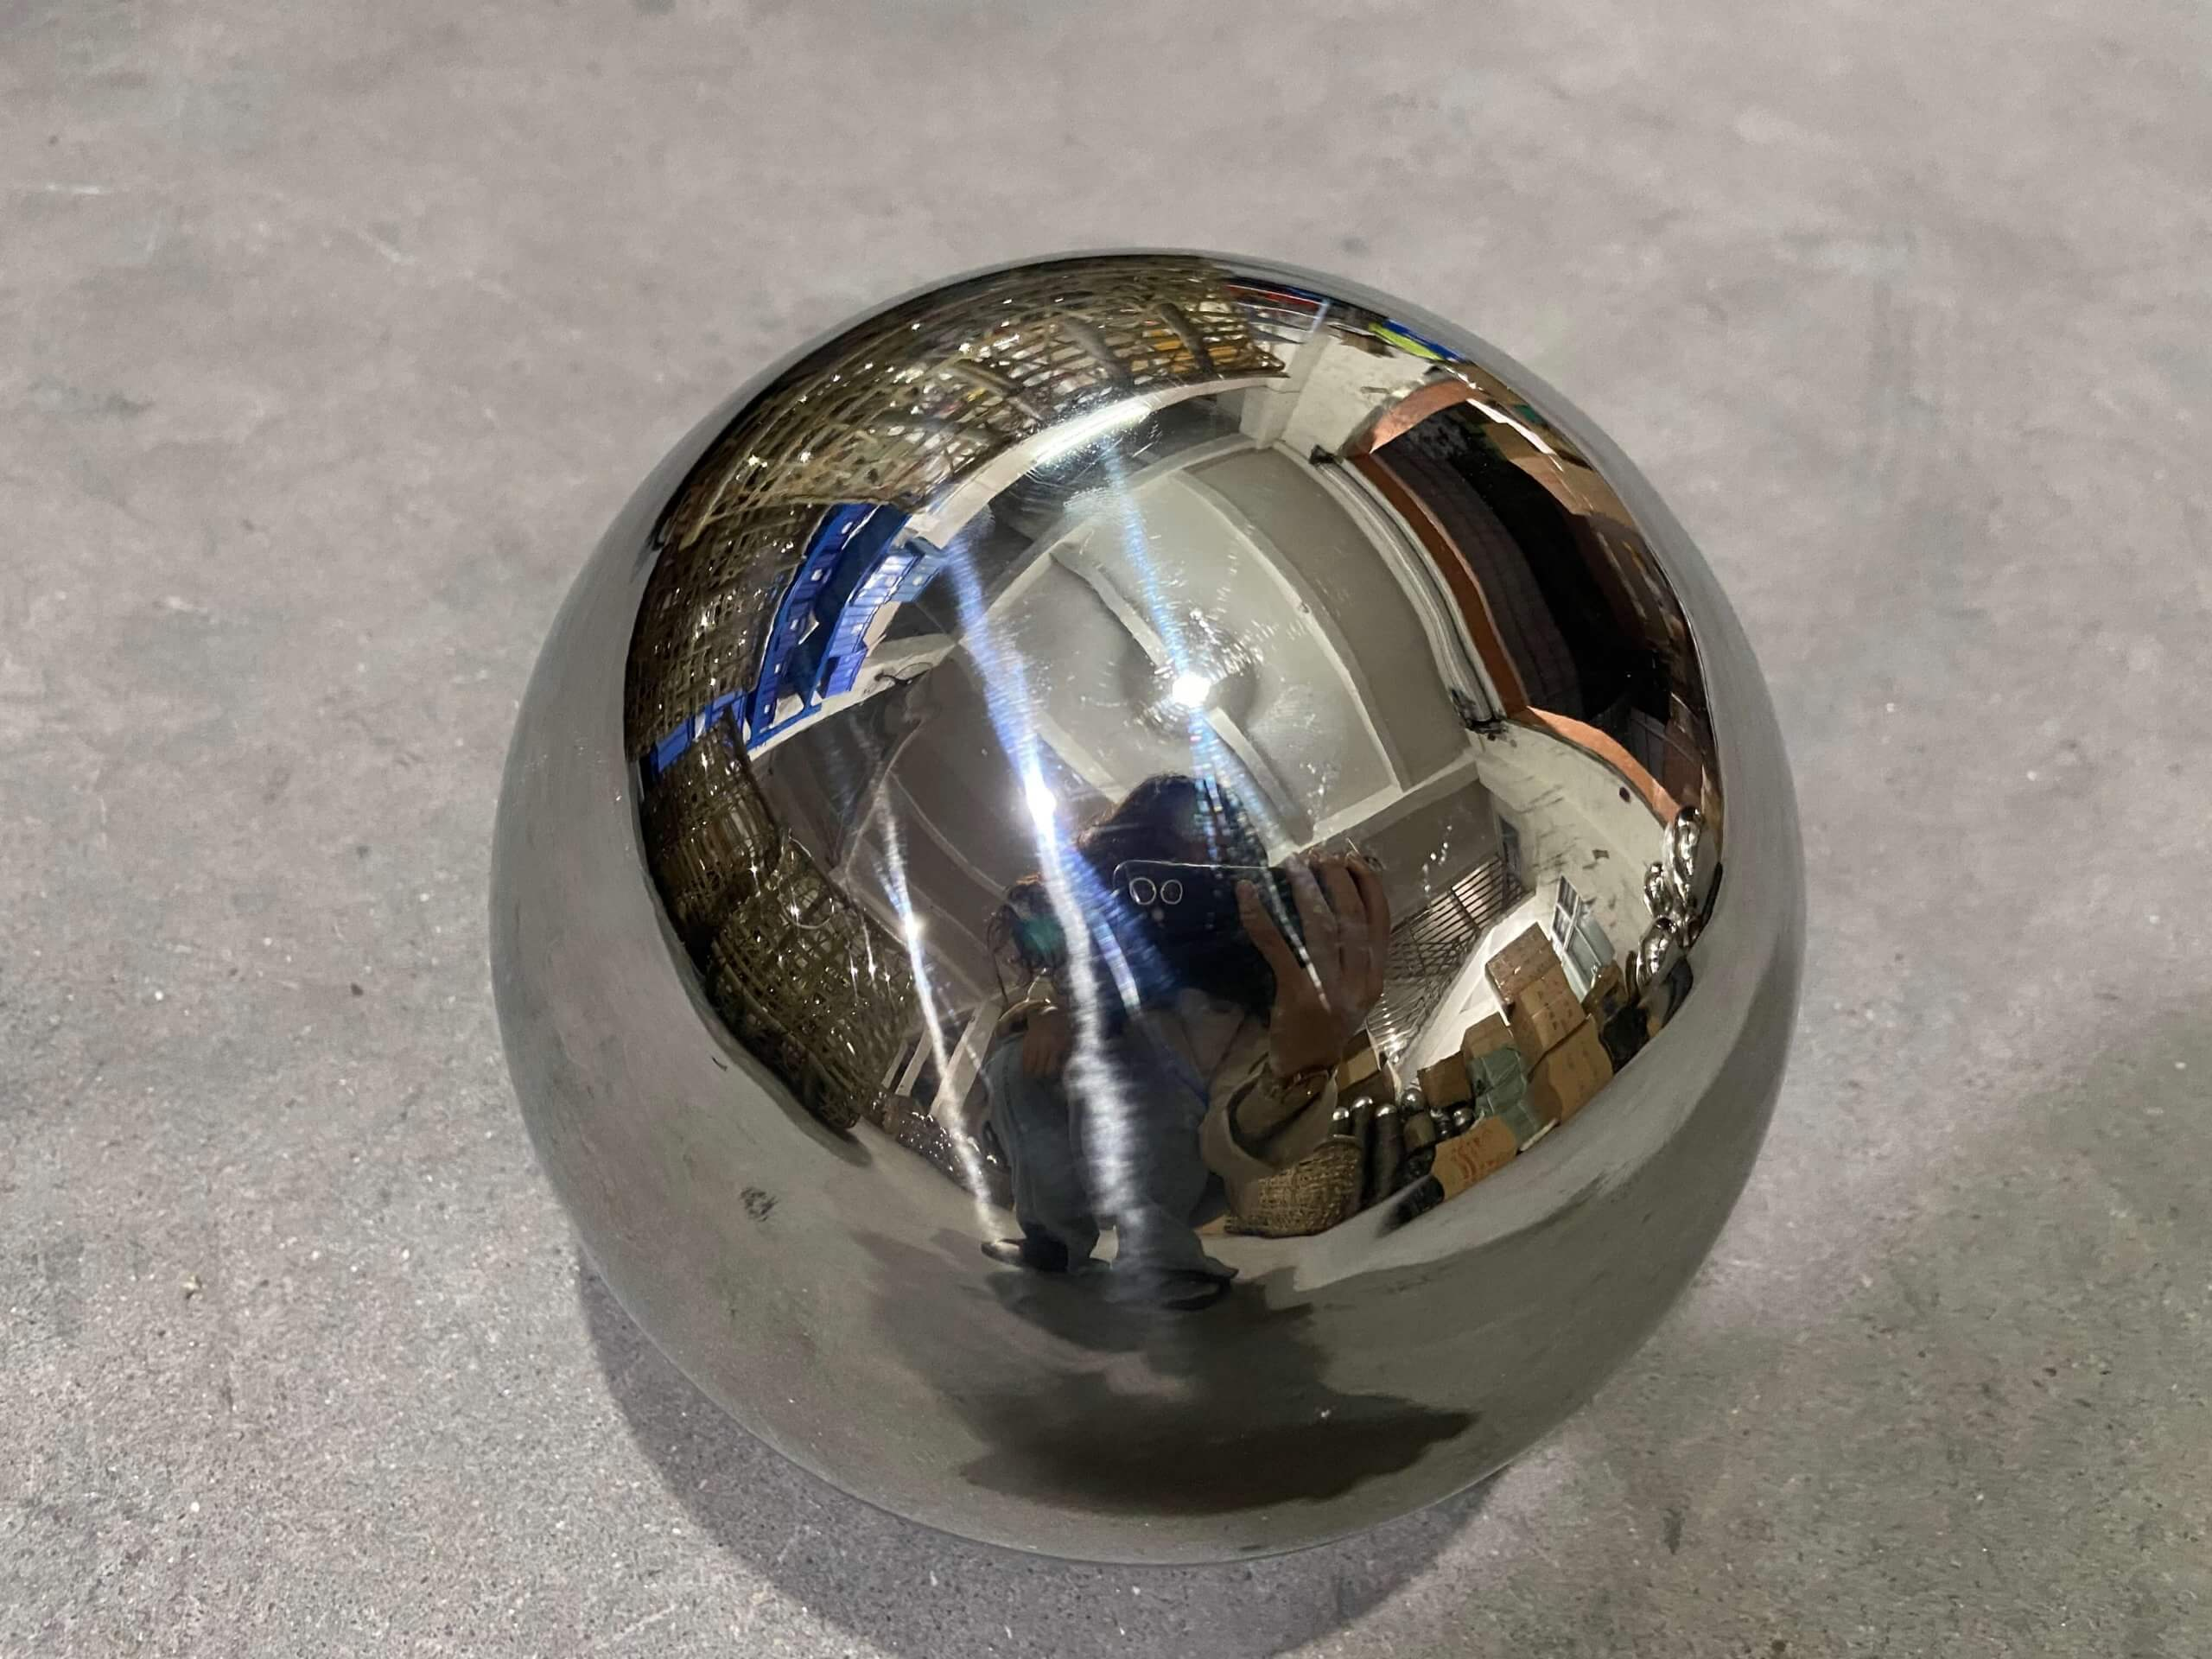 Stainless Steel Hollow Sphere, Color Stainless Steel Ball, interior decoration, indoor/outdoor decoration, design